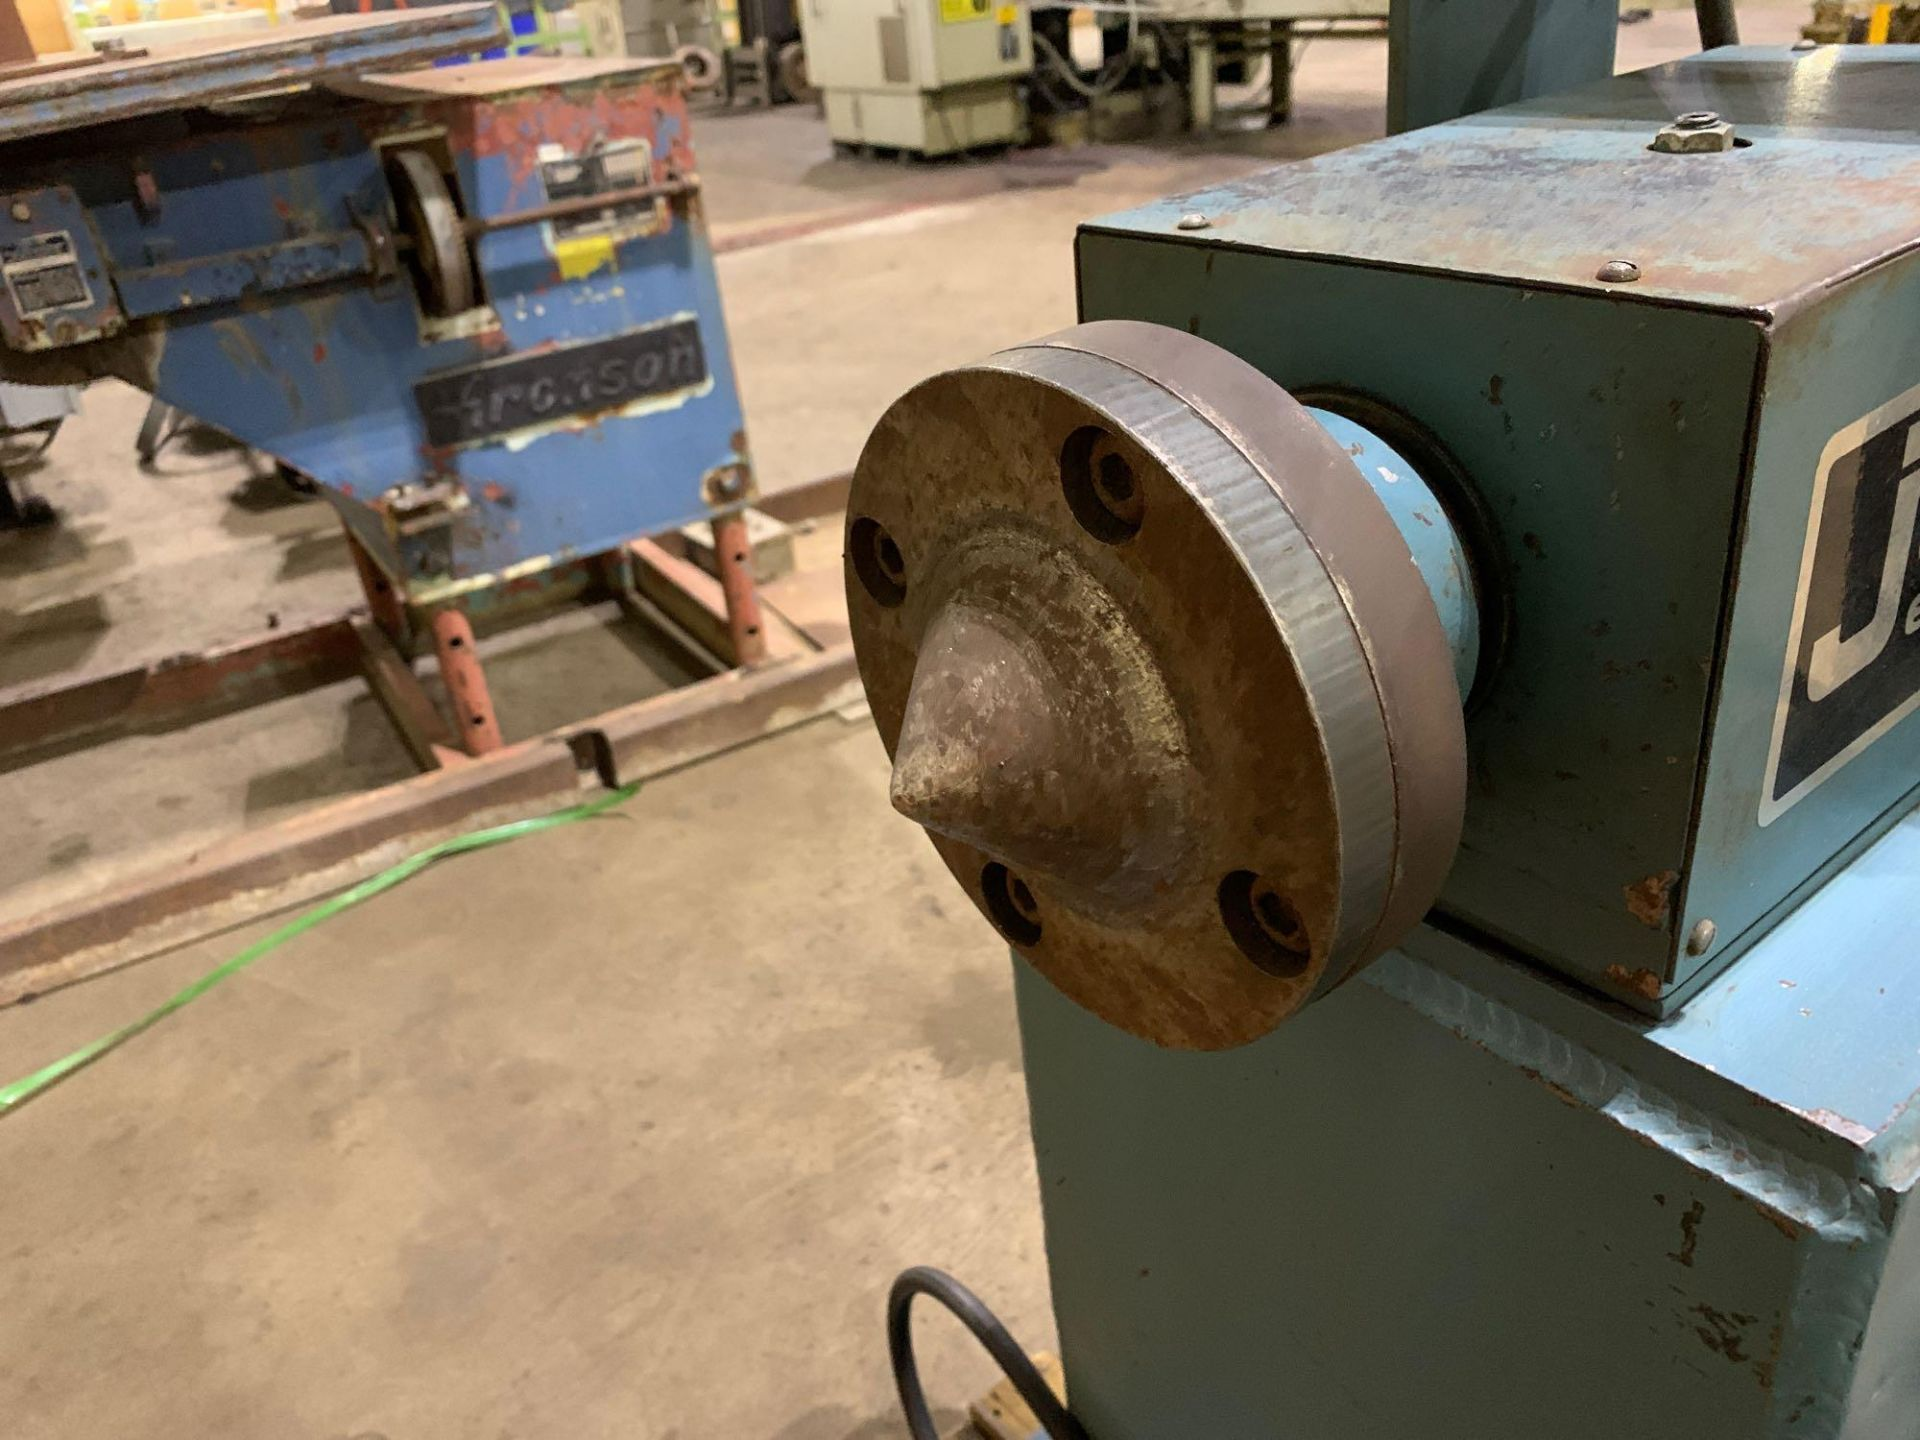 Jetline Welding Positioner Model CU5-216 Serial Number: 07625 Pipe Weld Positioner with Tail Stock I - Image 11 of 15